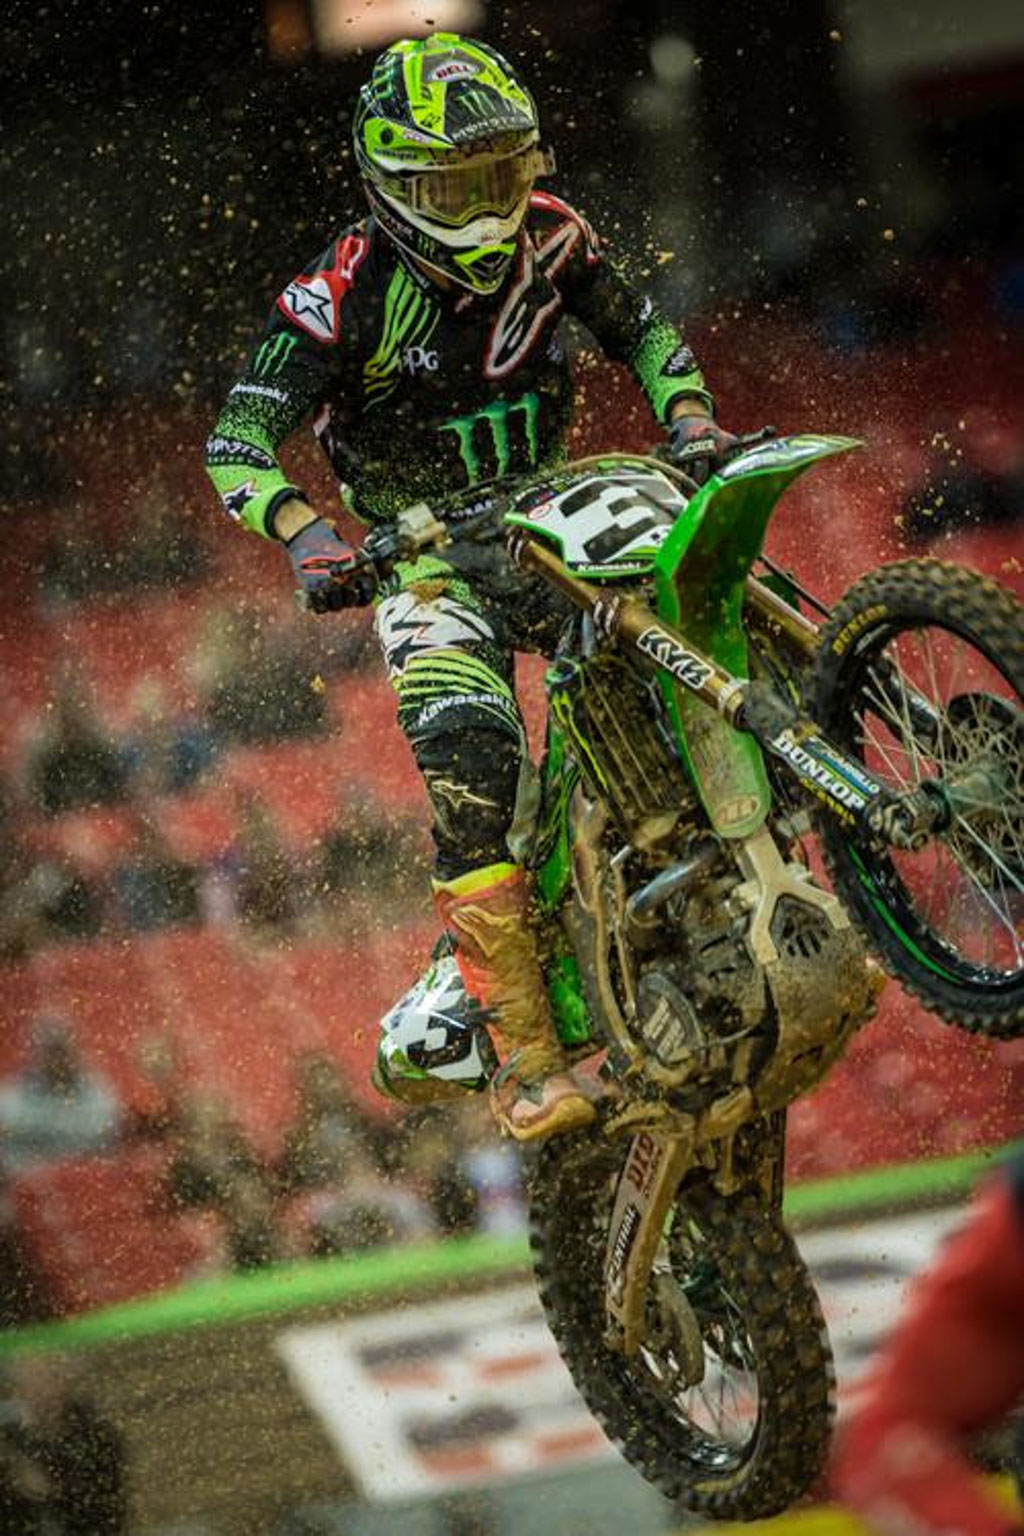 Tomac was on the podium again